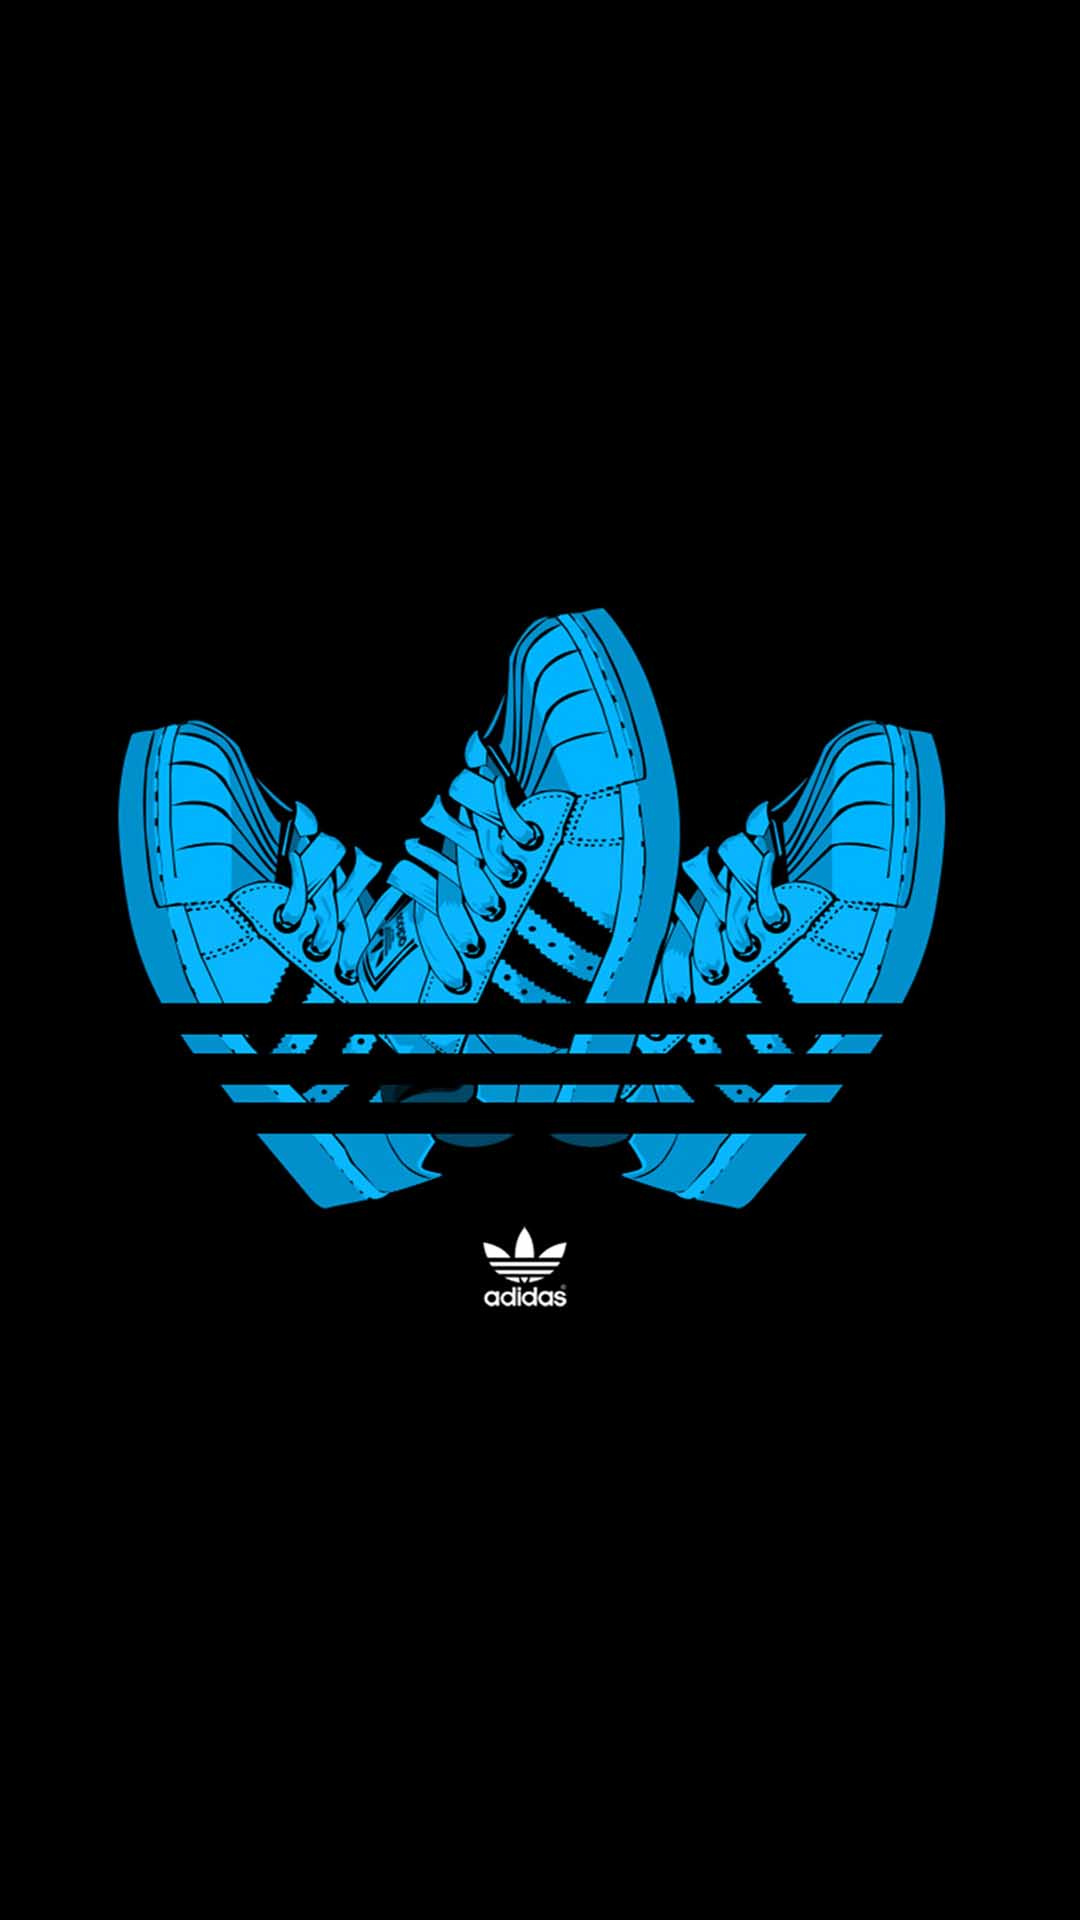 iPhone wallpaper adidas classic Adidas